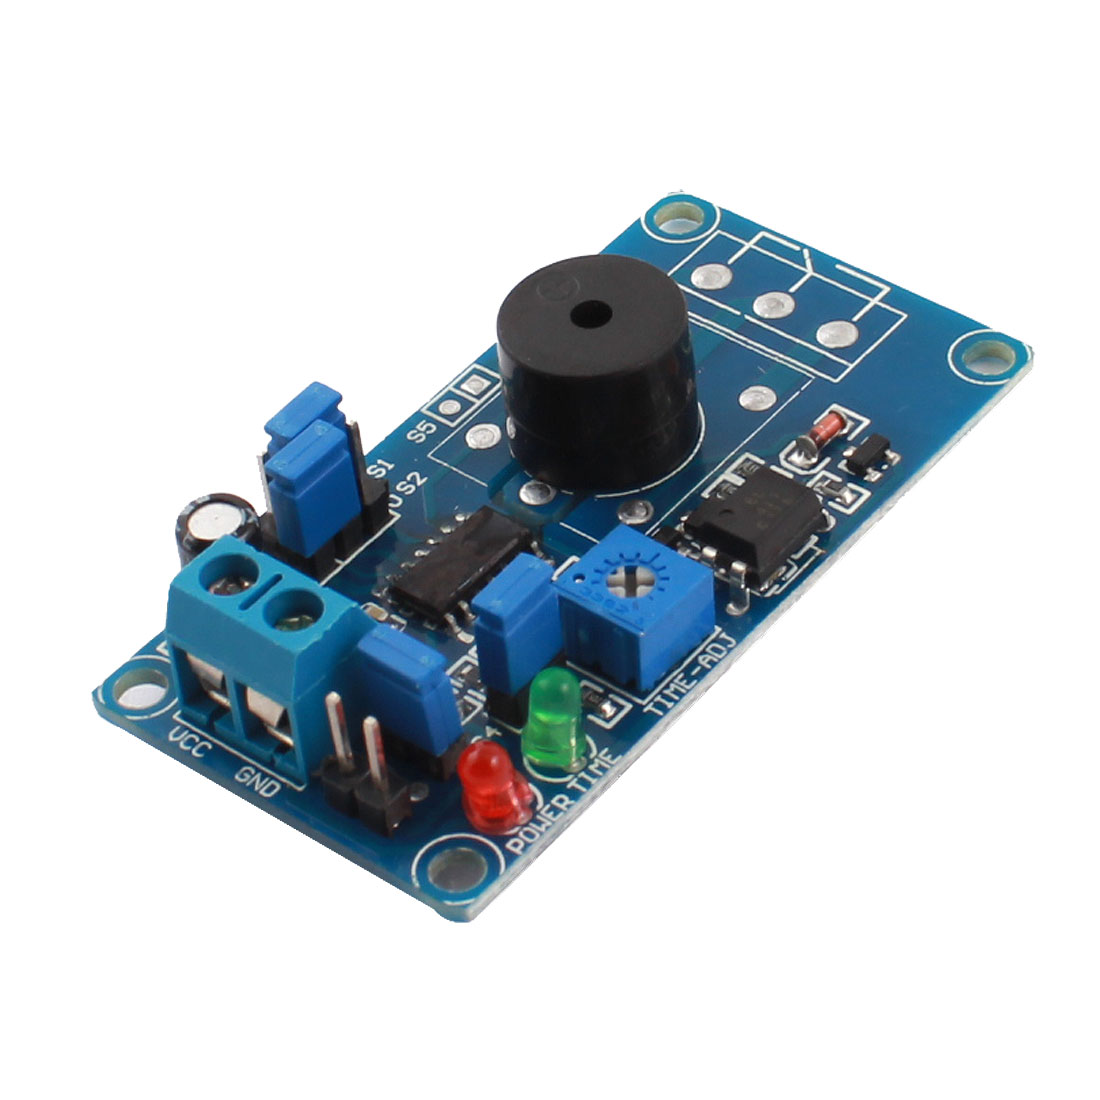 DC12V High/Low Level Trigger 85dB Buzzer Alarm Time Delay Module FC-31